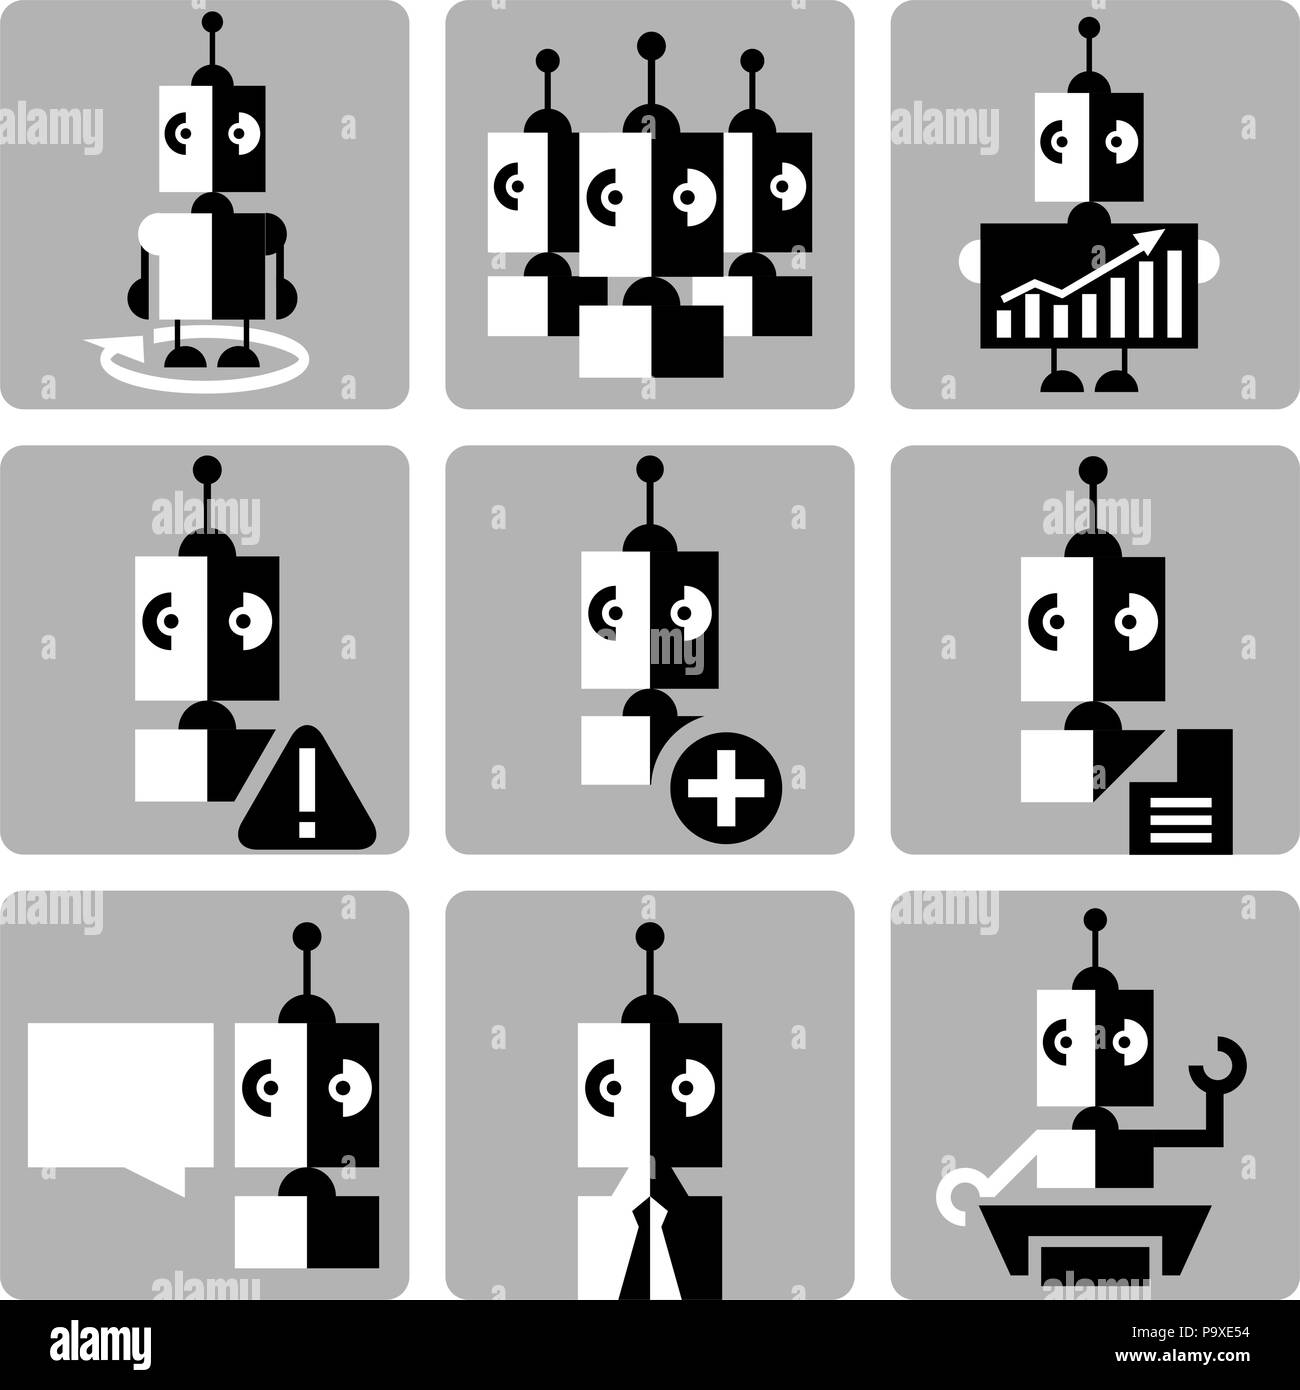 Human resources and management icons set with robots. Stock Vector